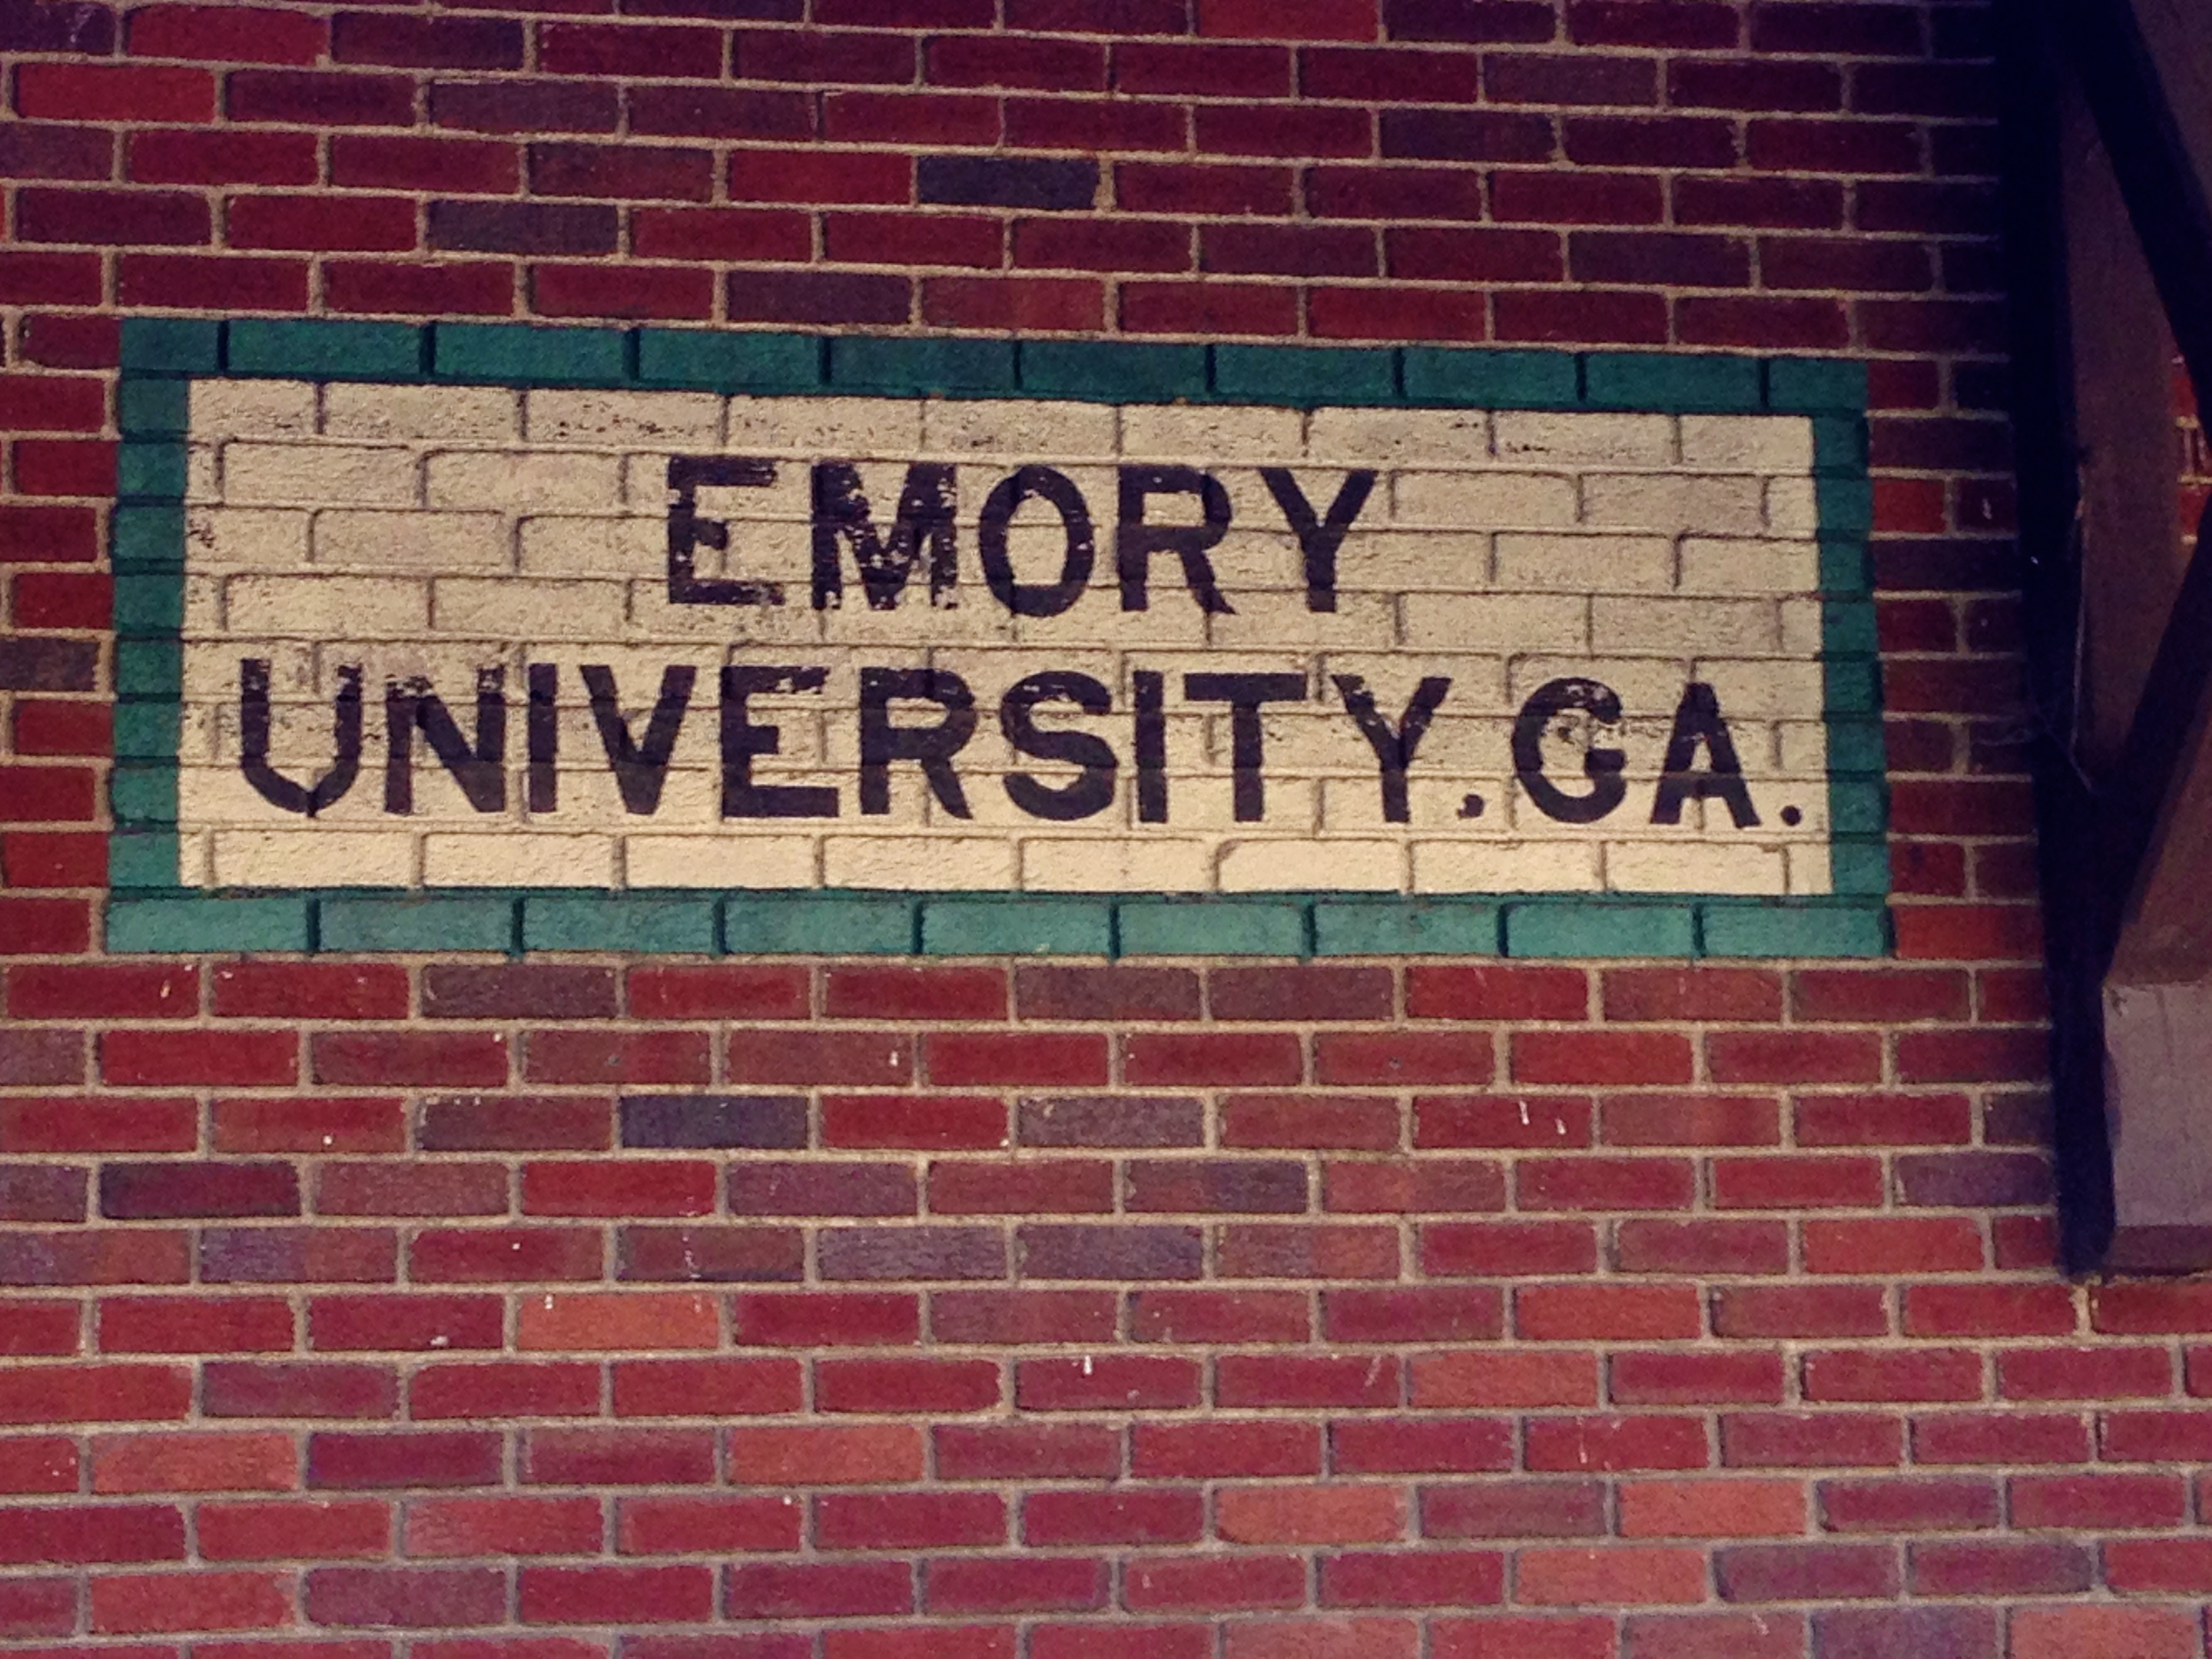 http://upload.wikimedia.org/wikipedia/commons/2/23/Plaque_on_The_Depot_at_Emory_University.jpg